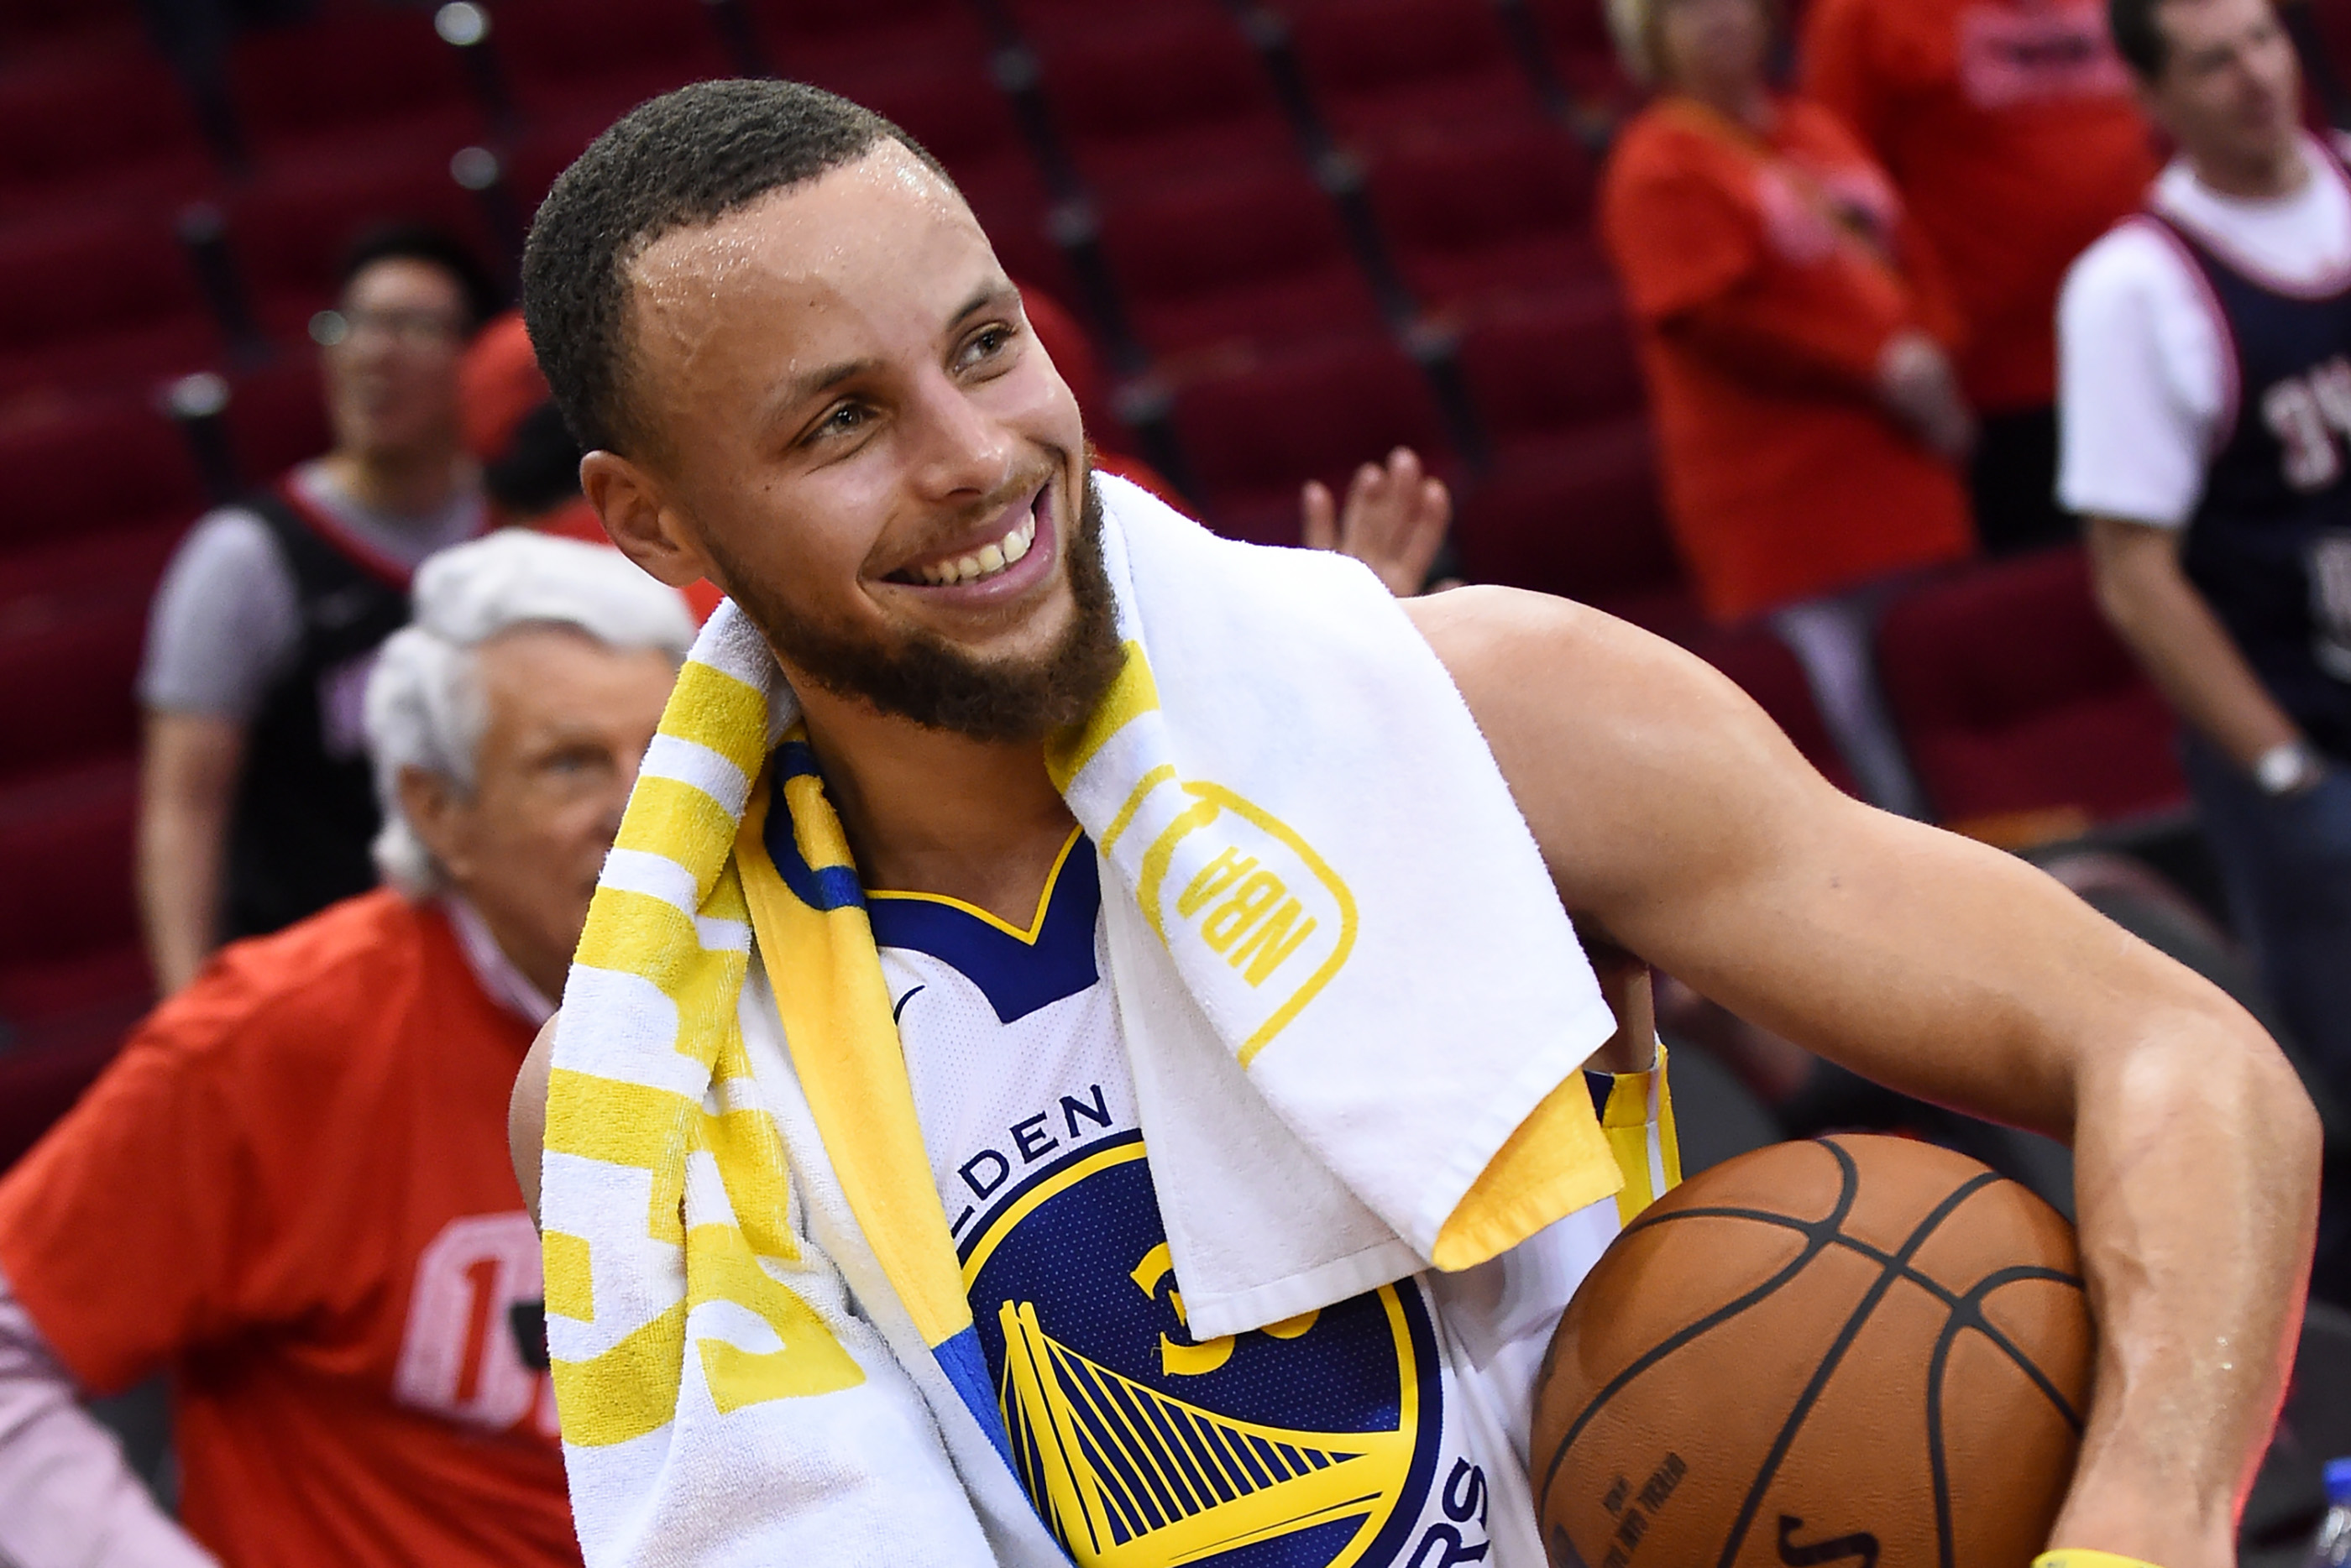 180531-wealthiest-nba-players-stephen-curry